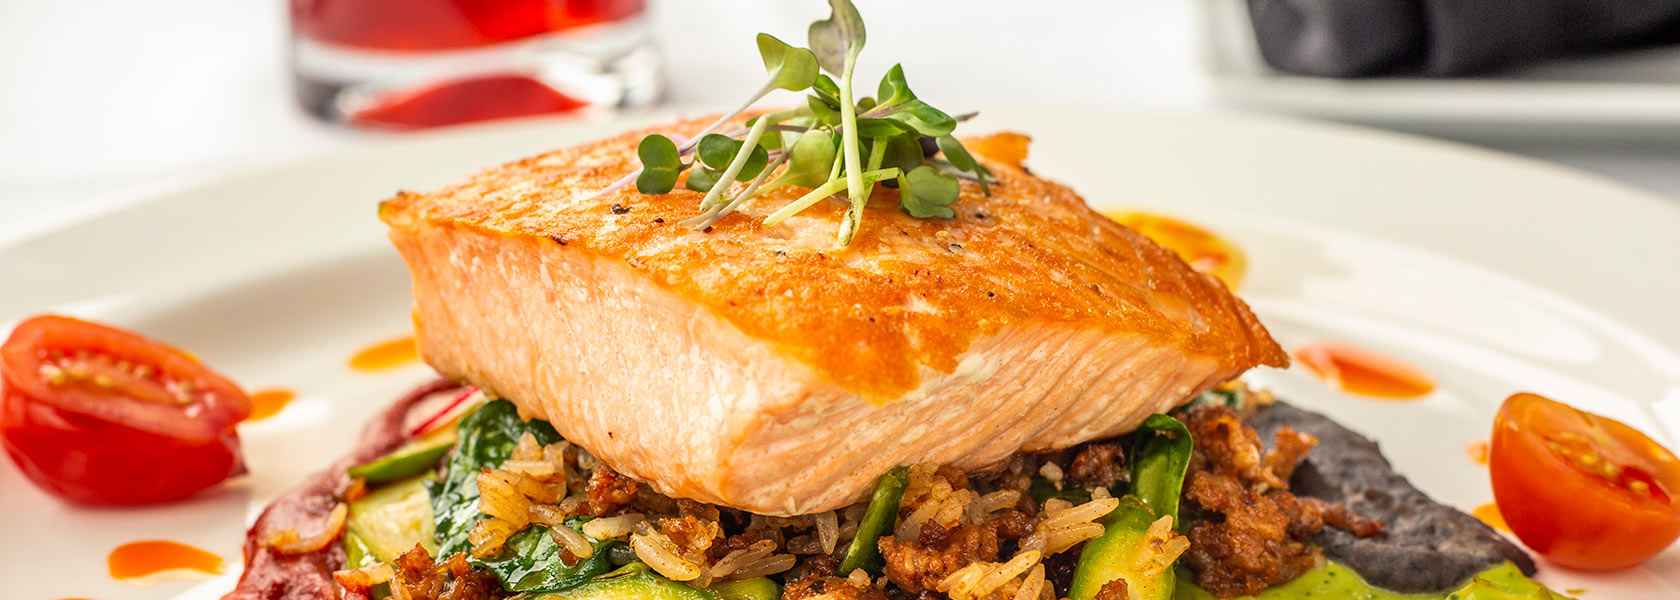 Pan-seared salmon plated on wild rice with cocktail